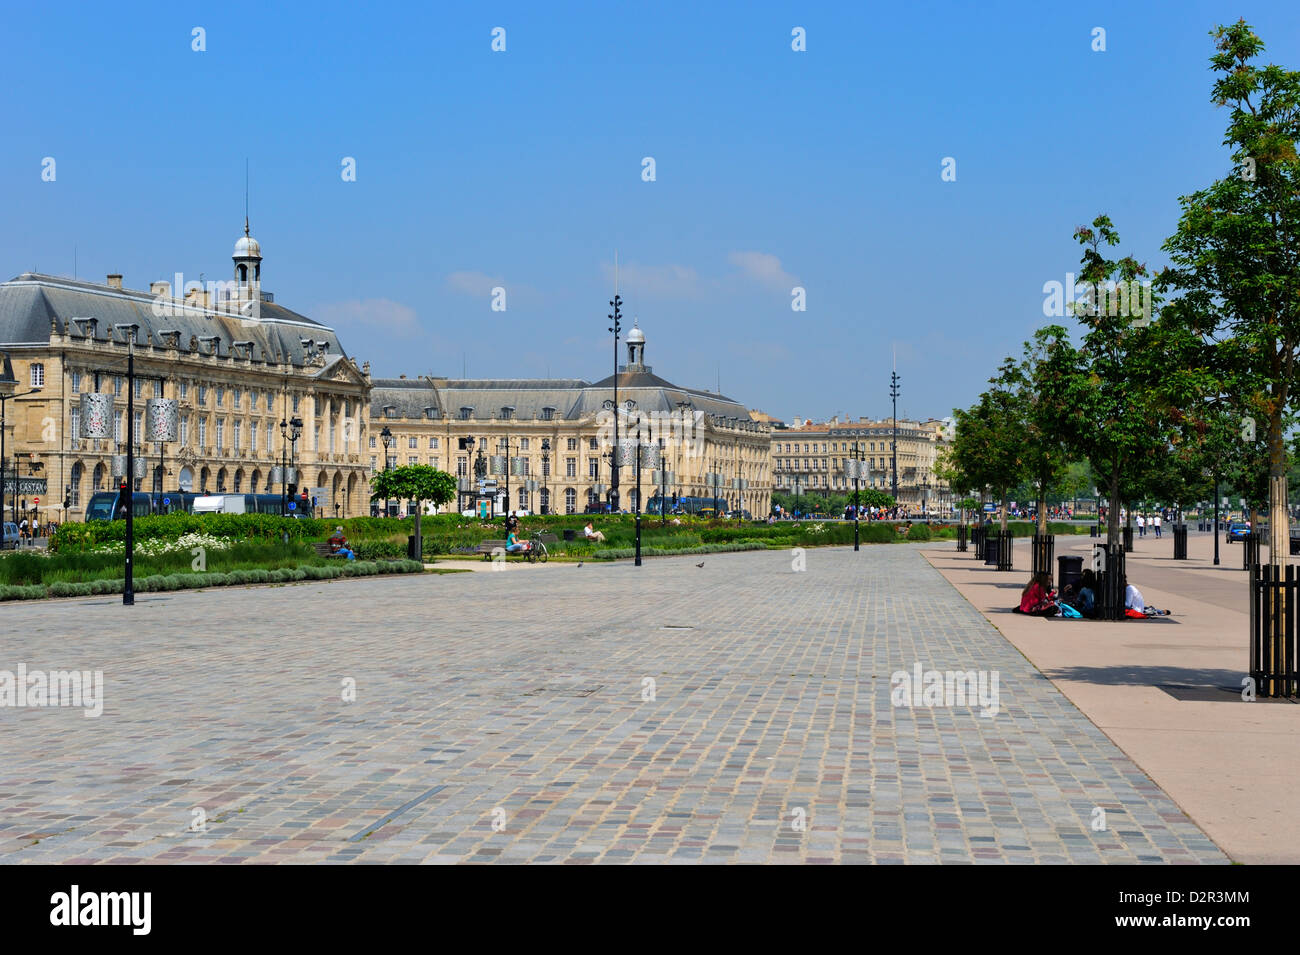 Quay Richelieu on the waterfront, Bordeaux, UNESCO World Heritage Site, Gironde, Aquitaine, France, Europe - Stock Image